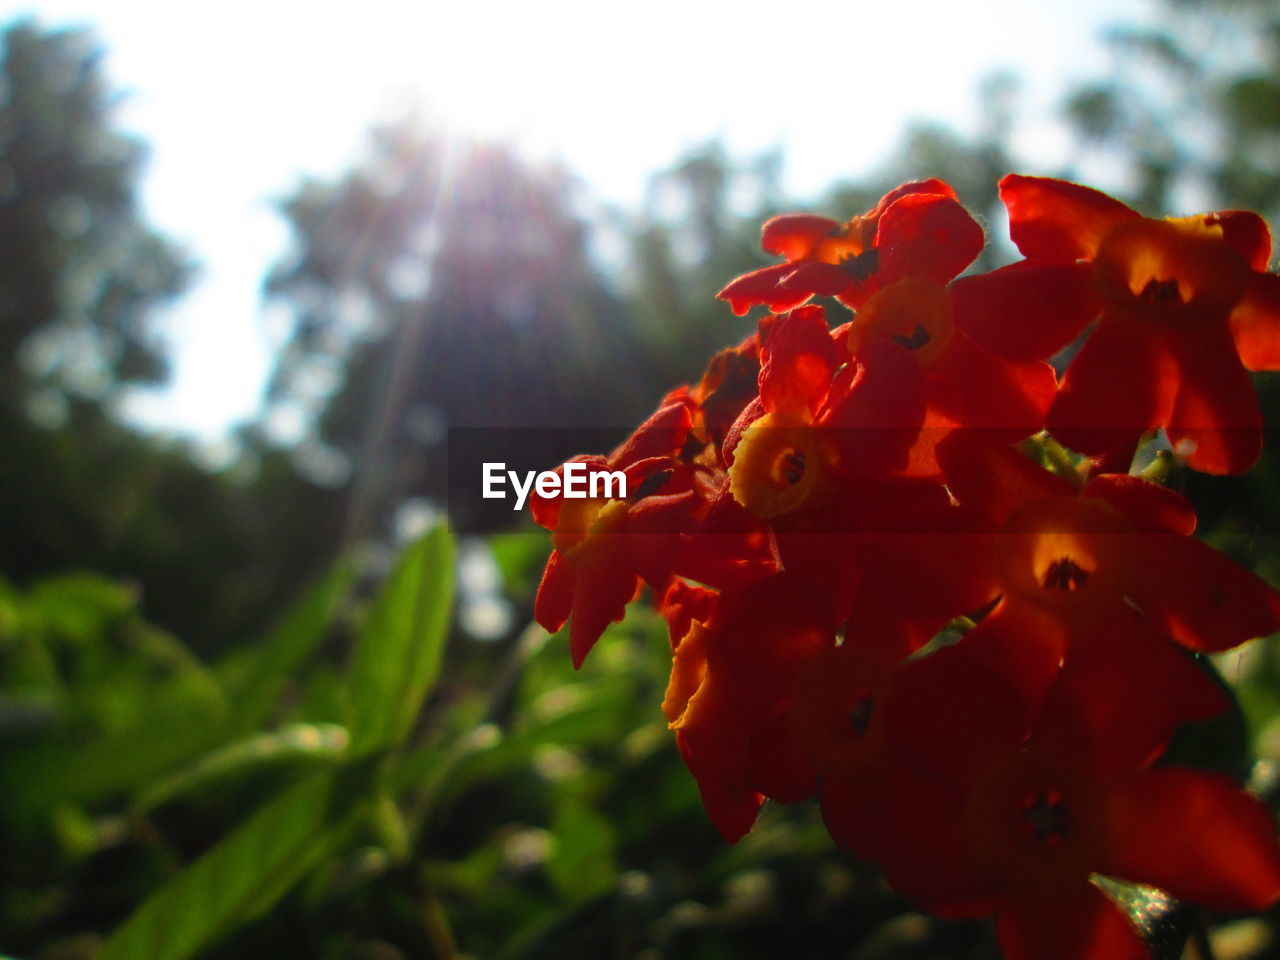 flower, growth, nature, petal, beauty in nature, fragility, red, plant, freshness, outdoors, flower head, close-up, no people, focus on foreground, blooming, day, springtime, sky